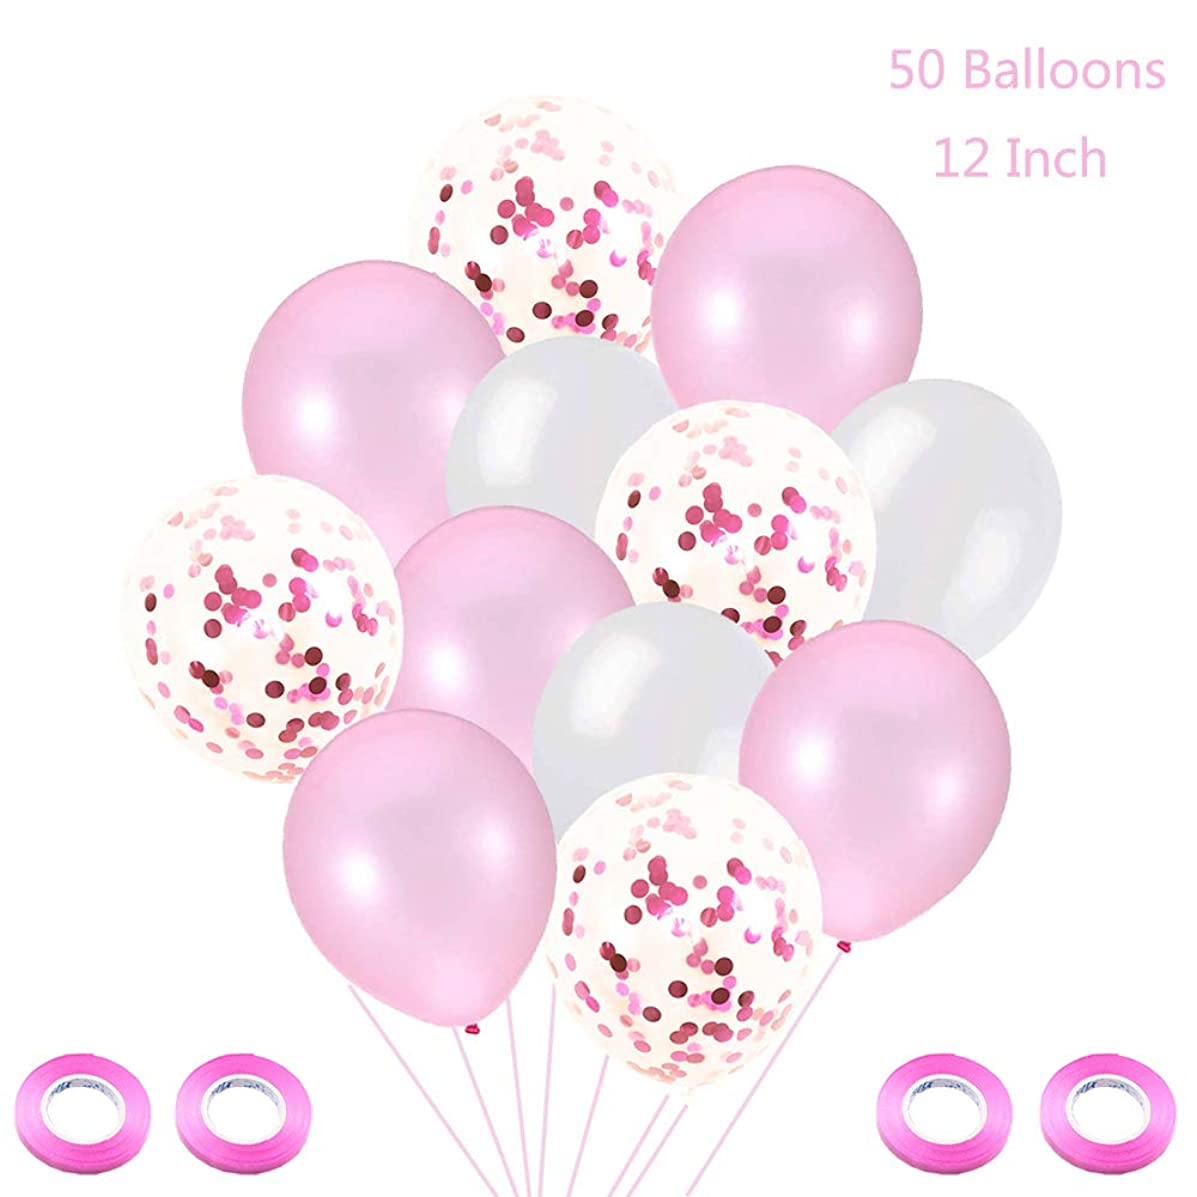 Juland 50 Pieces Latex Pink Balloons Pink Confetti Helium Balloons Party Decorative Balloons with 4 Pink Rolls Ribbons for Baby Shower Party Wedding Birthday Decoration Bachelorette Party Balloons